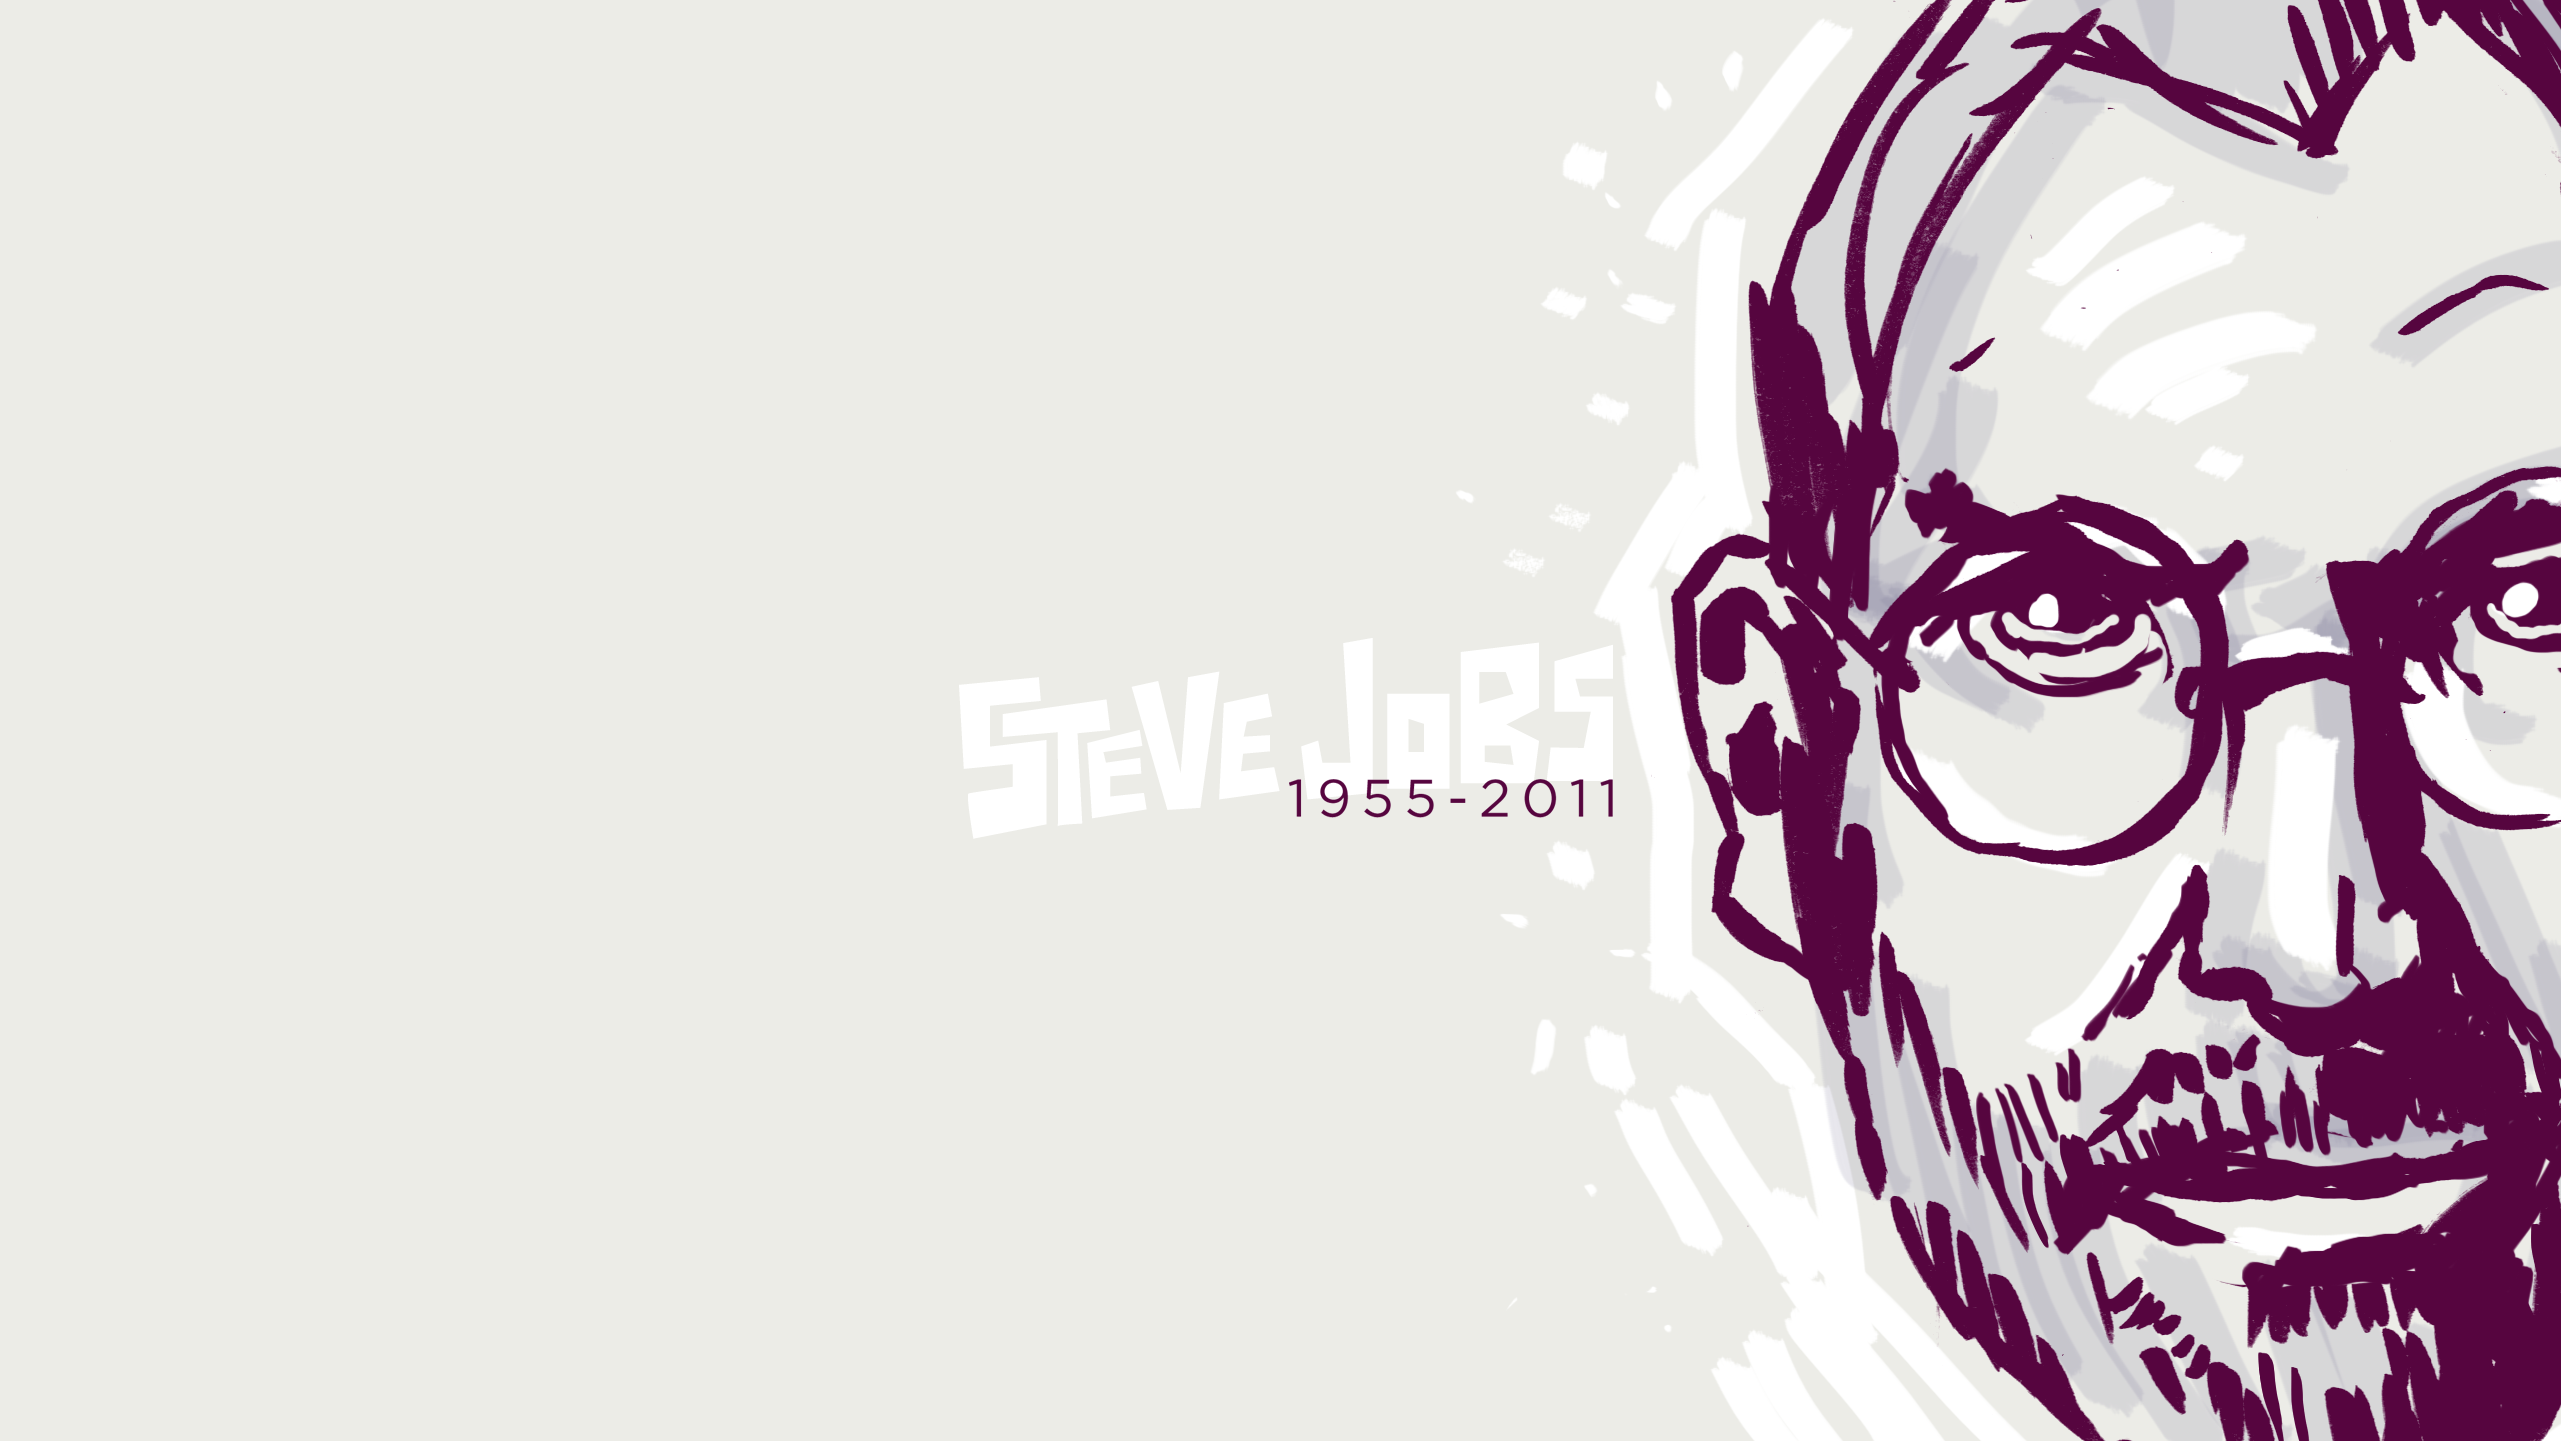 Original Article on UltraLinx Website – Steve Jobs Remembrance